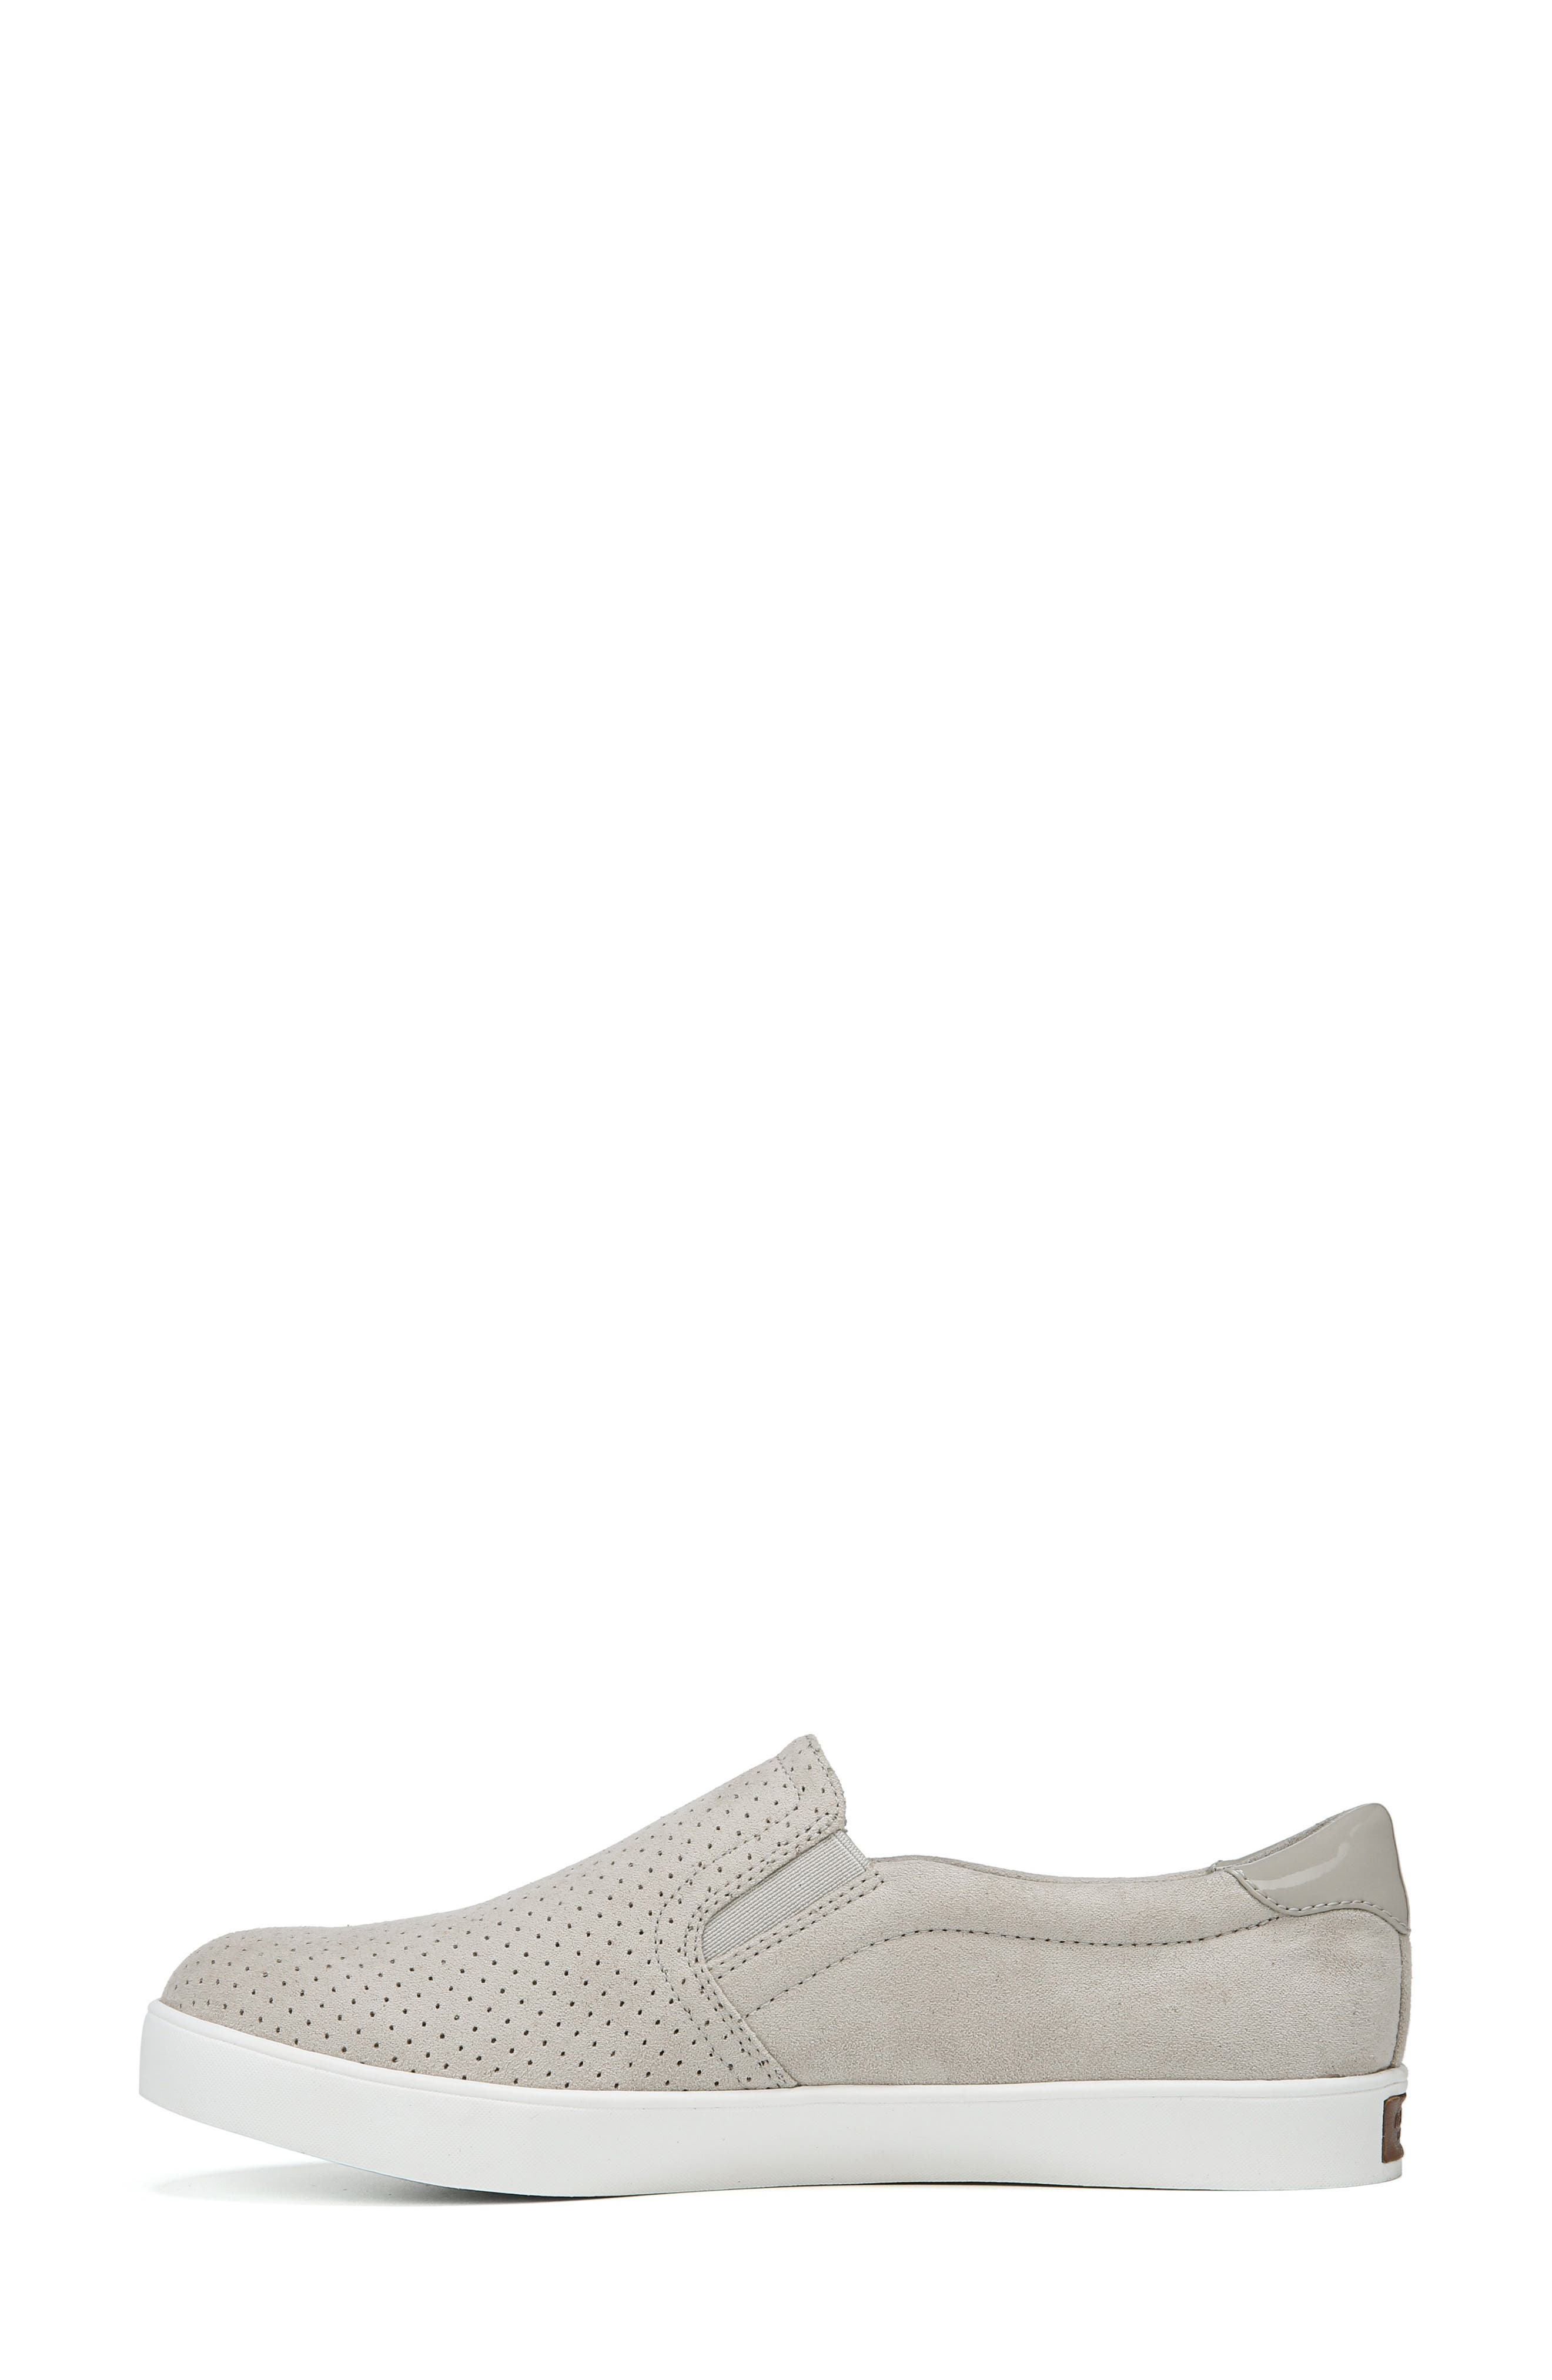 DR. SCHOLL'S, Madison Slip-On Sneaker, Alternate thumbnail 2, color, GREY PERFORATED FABRIC